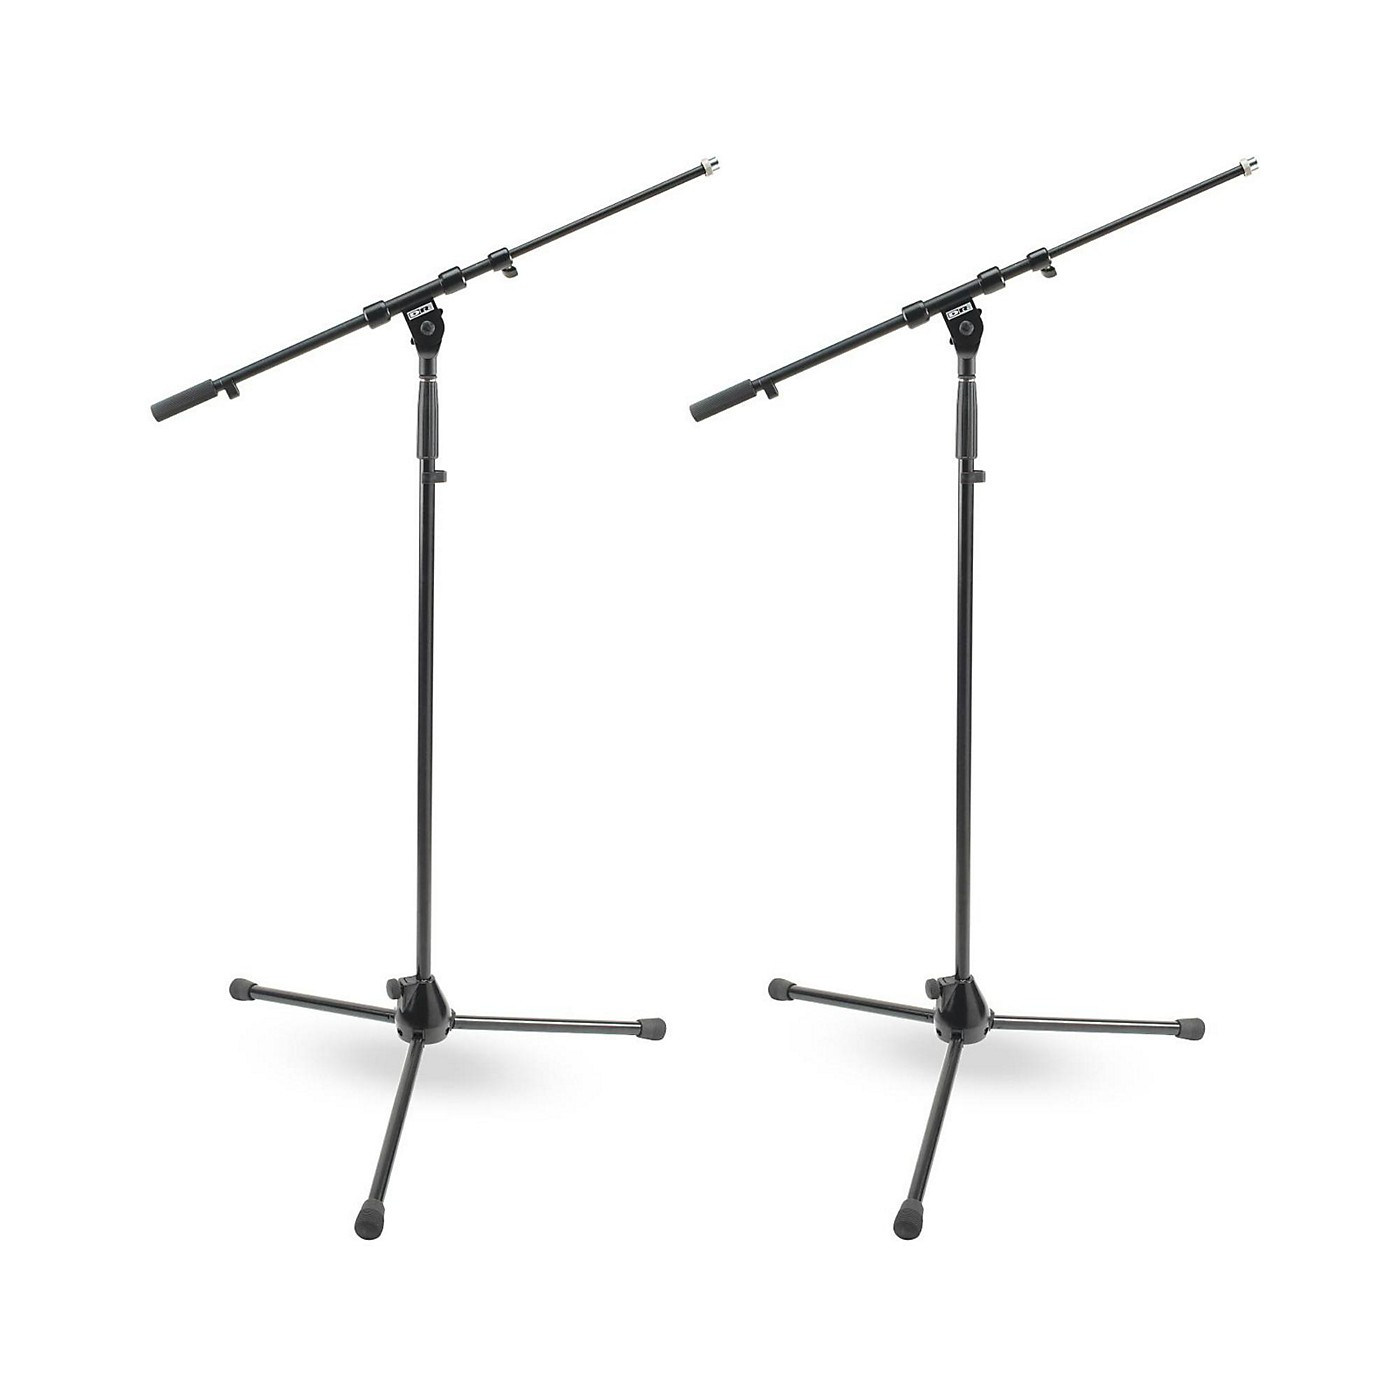 DR Pro Tripod Mic Stand with Telescoping Boom - 2 Pack thumbnail